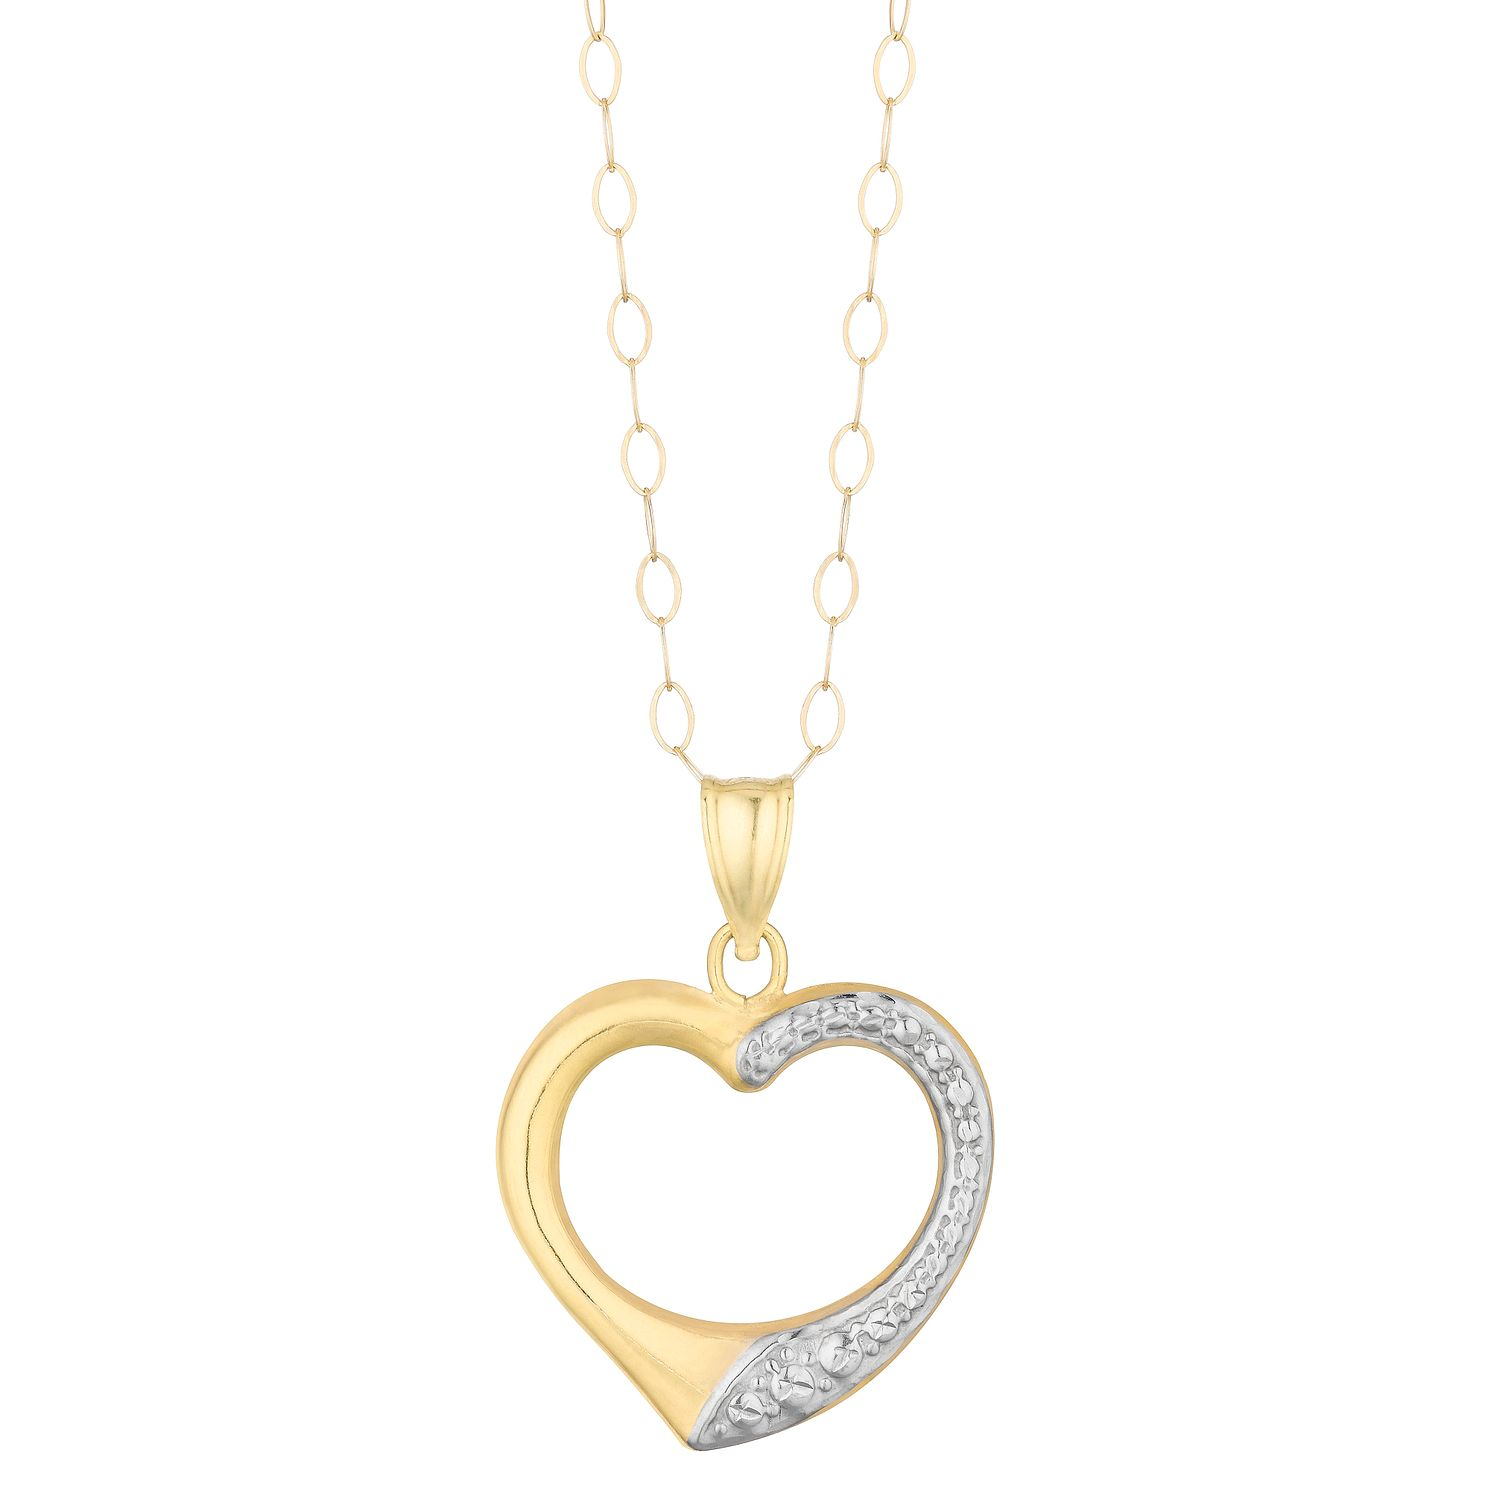 9ct Two Tone Gold Open Heart Pendant - Product number 3114651